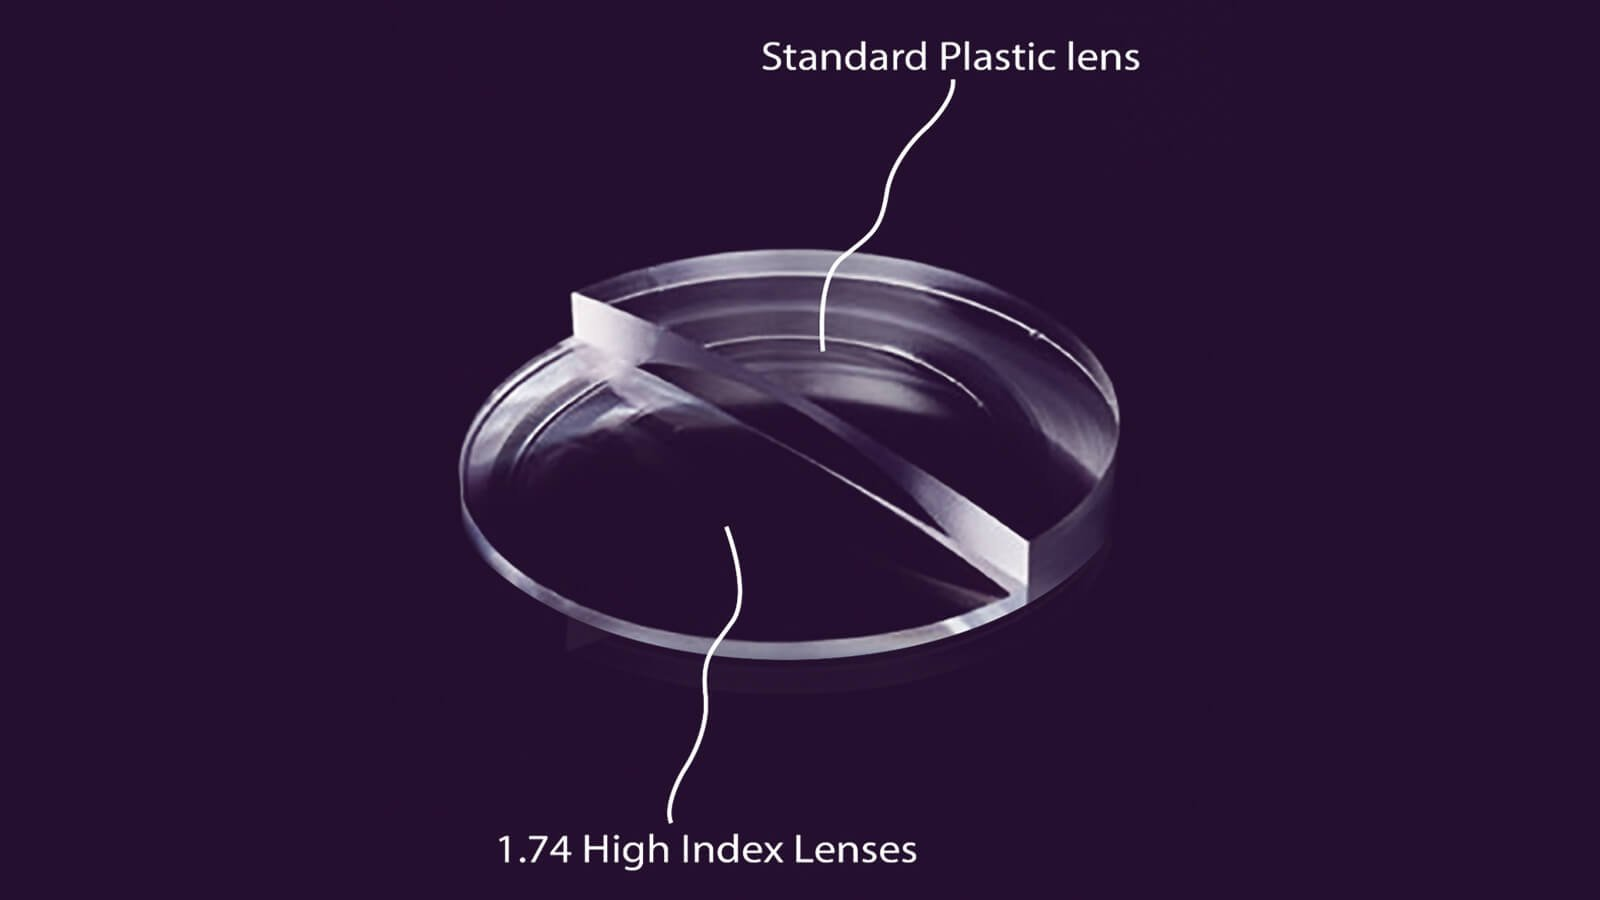 Difference between High-index lenses and Standard lenses